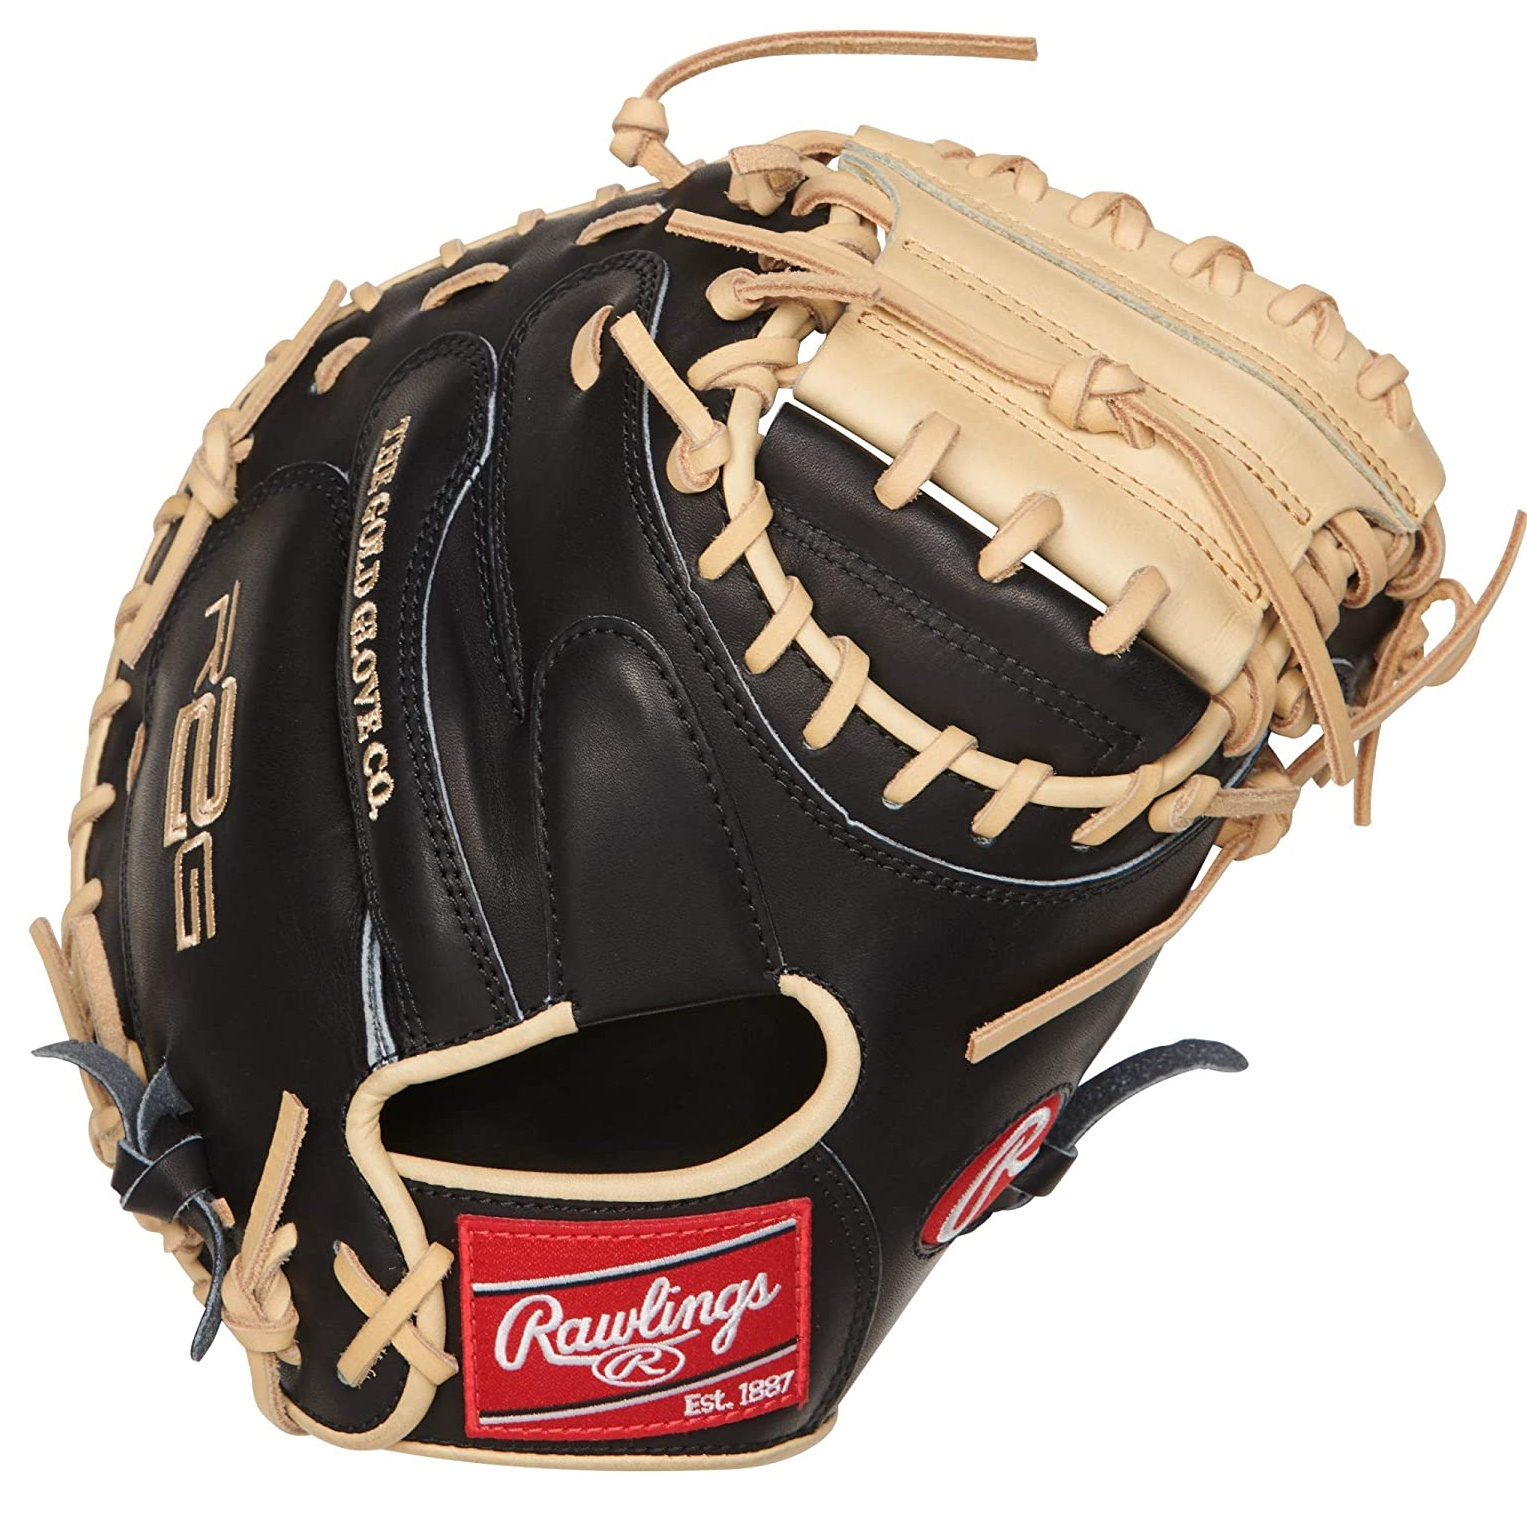 rawlings-heart-of-the-hide-r2g-catchers-mitt-black-camel-33-inch-one-piece-solid-web-right-hand-throw PRORCM33-23BC-RightHandThrow   Take off the tags and hit the field – this new